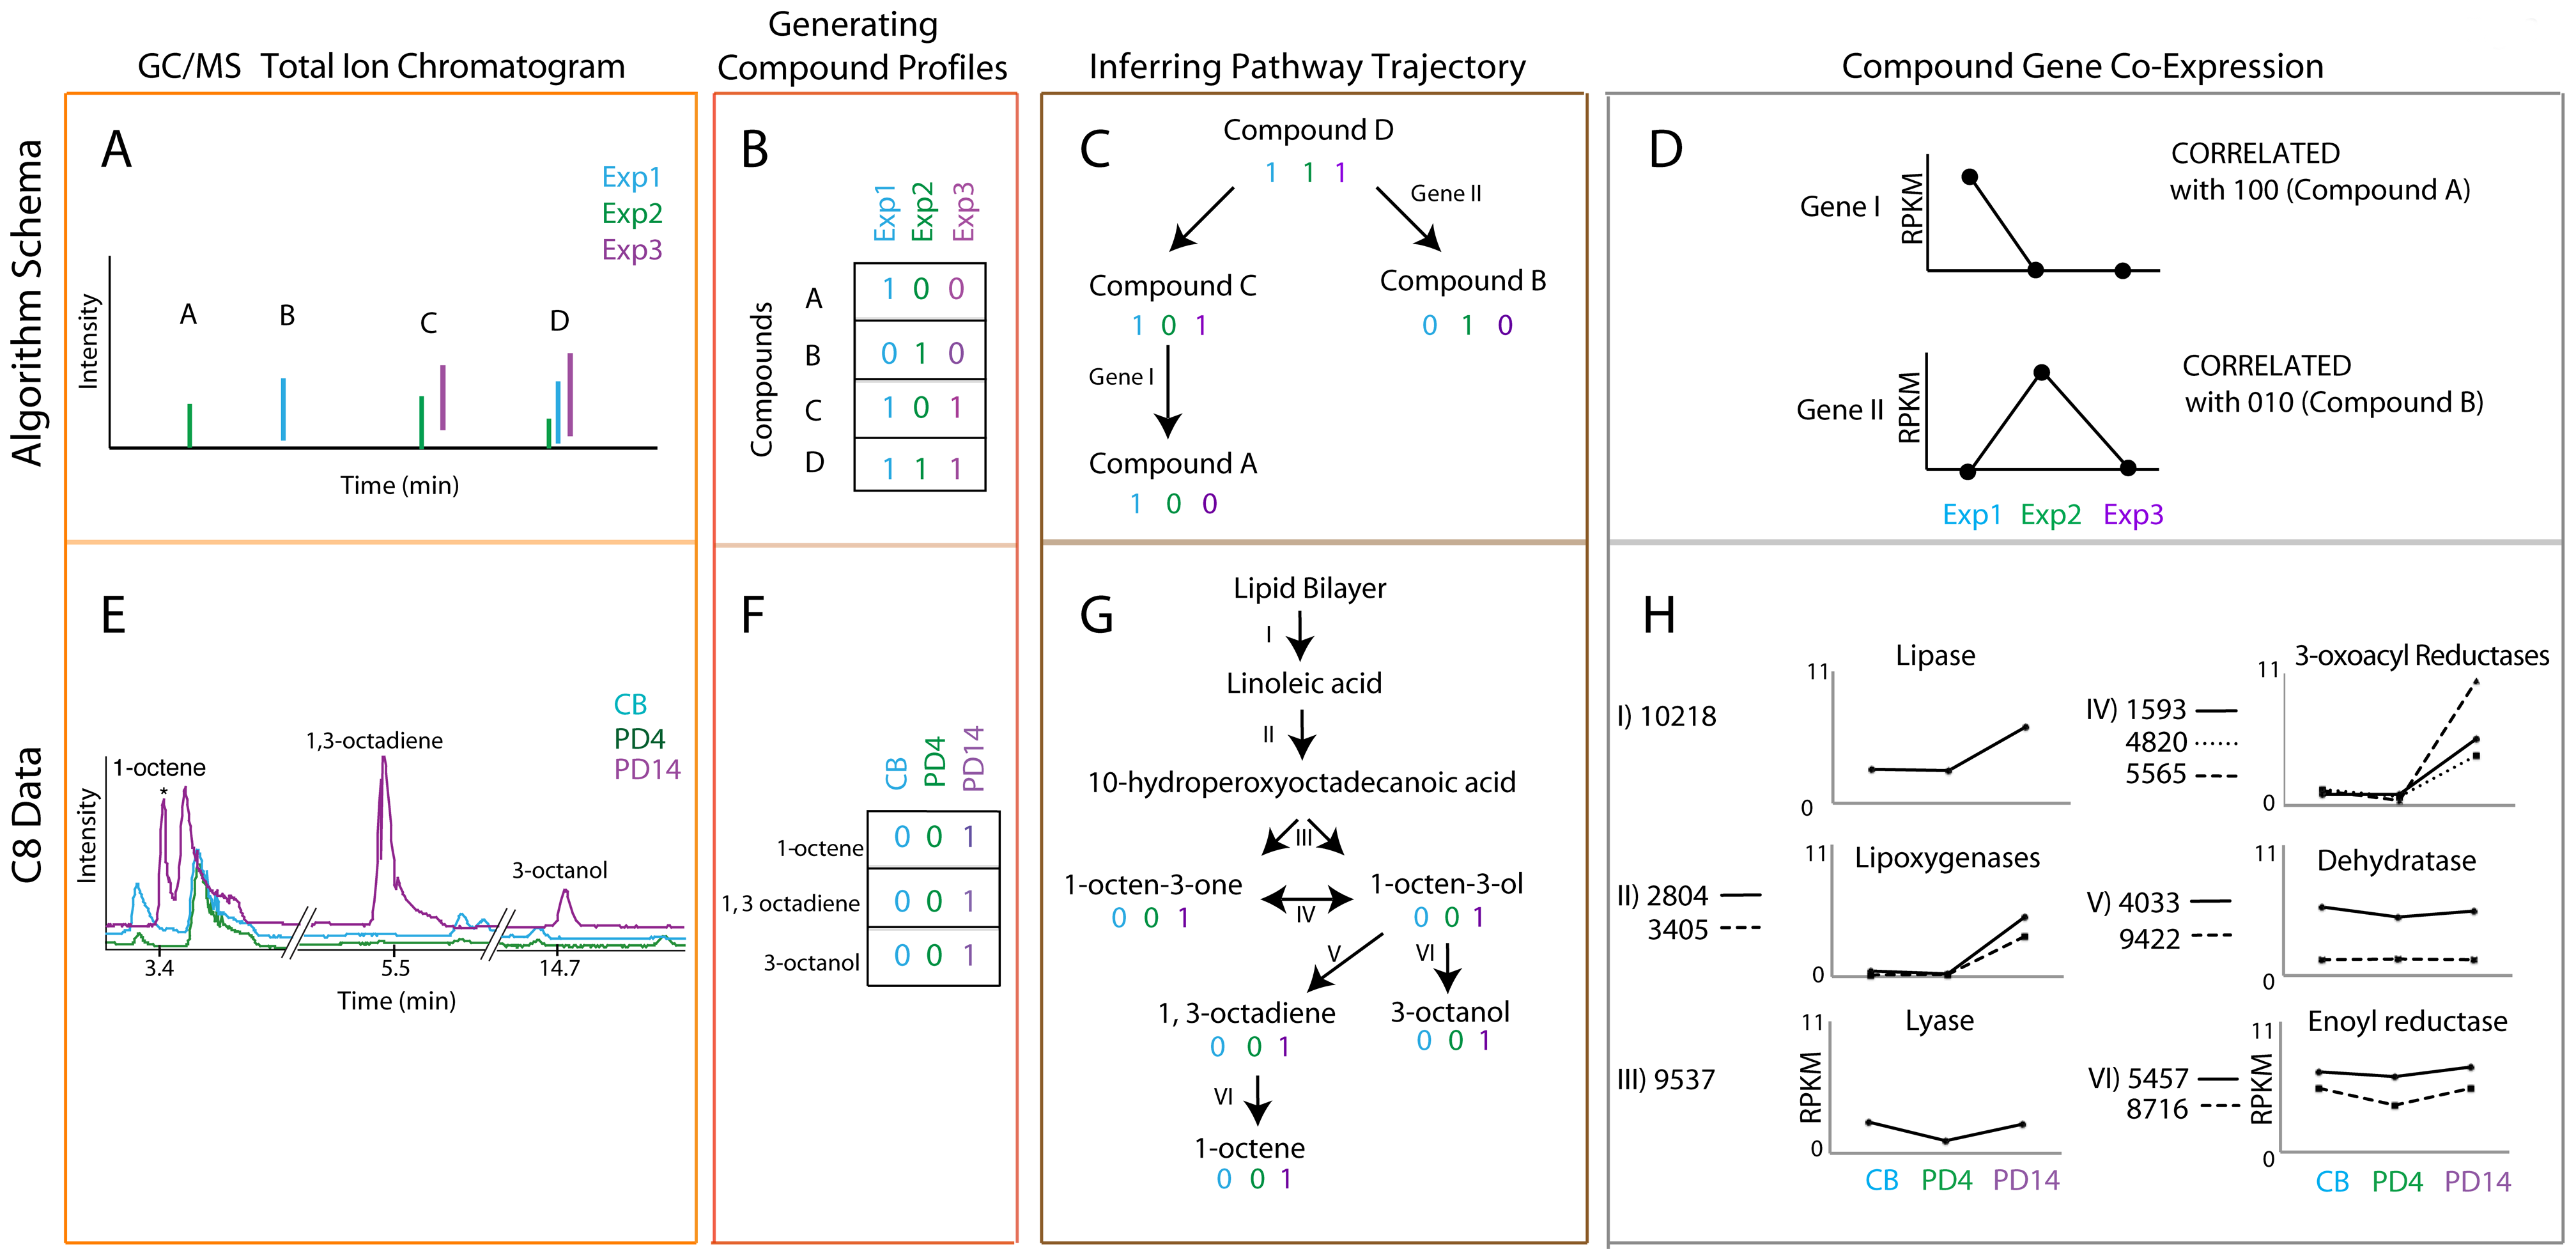 Coupled transcriptomics and metabolomics to generate pathway predictions.